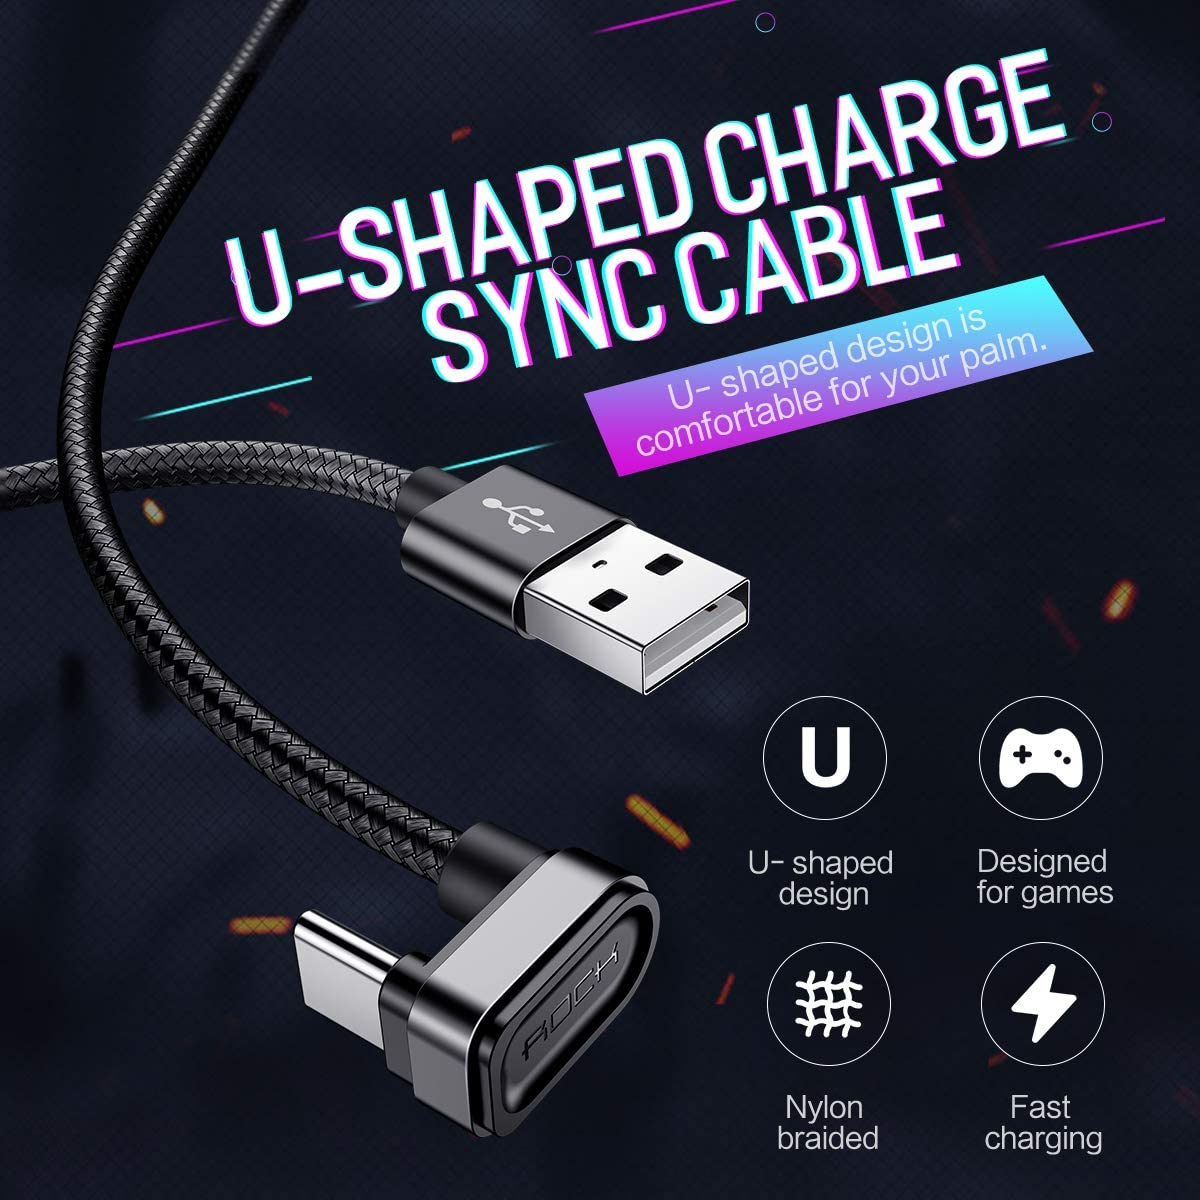 Nexus 5X // 6P Black iQOS Cetoom 1m Charger Cable Aikos Galaxy S9 // S8 // A3 // A7 // A9 // C9 // C5 // 7pro // C9 5V // 2.0A Metal Braided USB Type C Data Cable for Sony Xperia XZ // XZ2